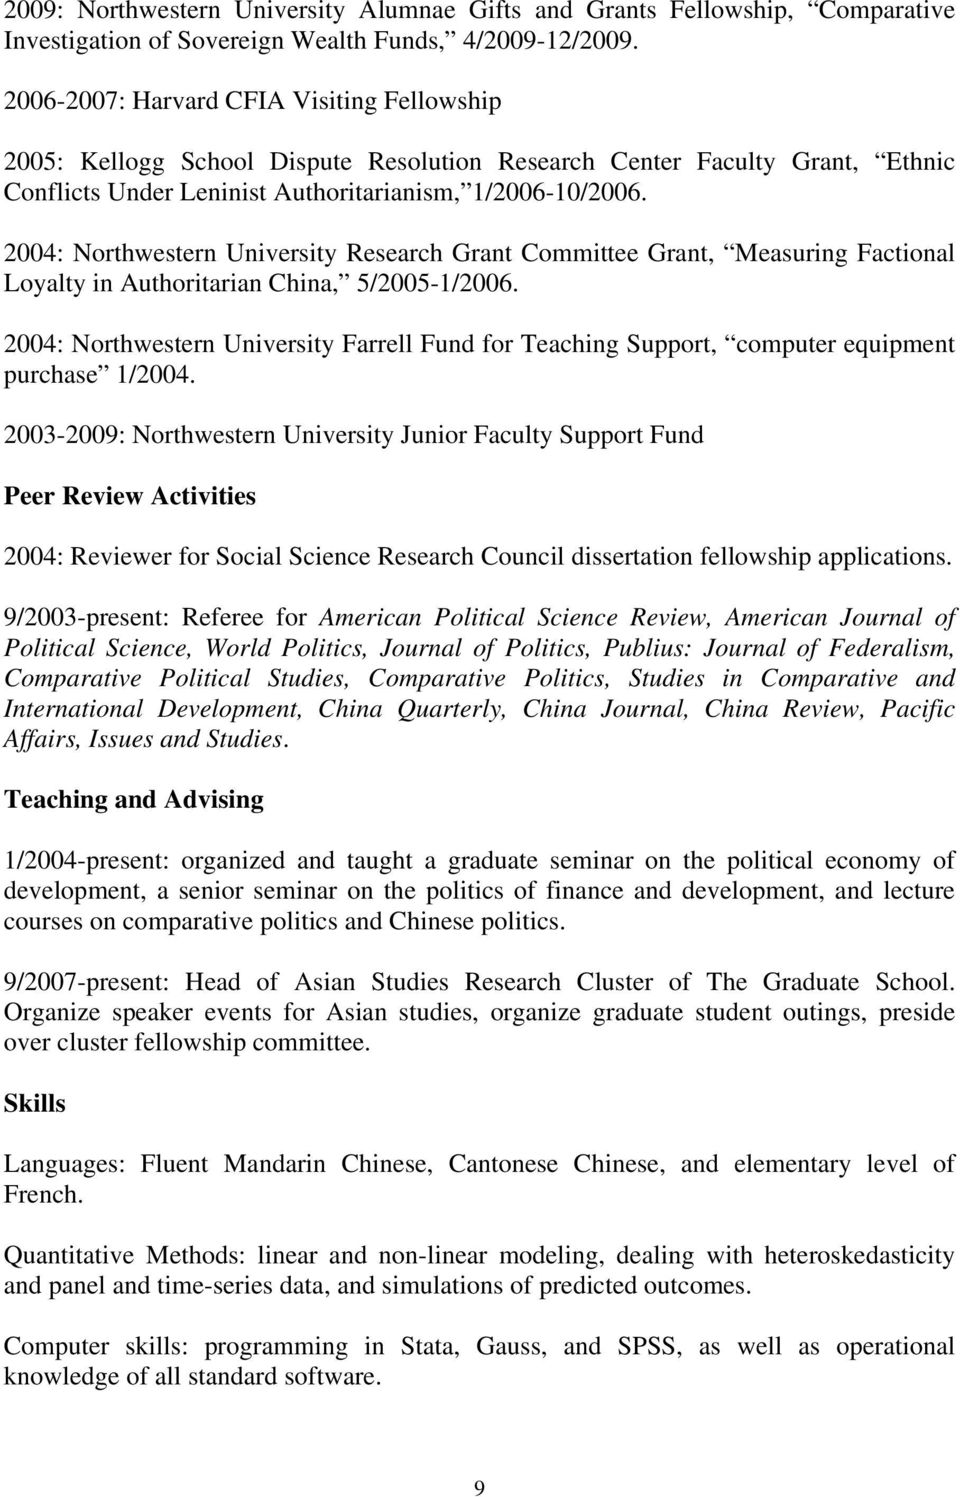 2004: Northwestern University Research Grant Committee Grant, Measuring Factional Loyalty in Authoritarian China, 5/2005-1/2006.